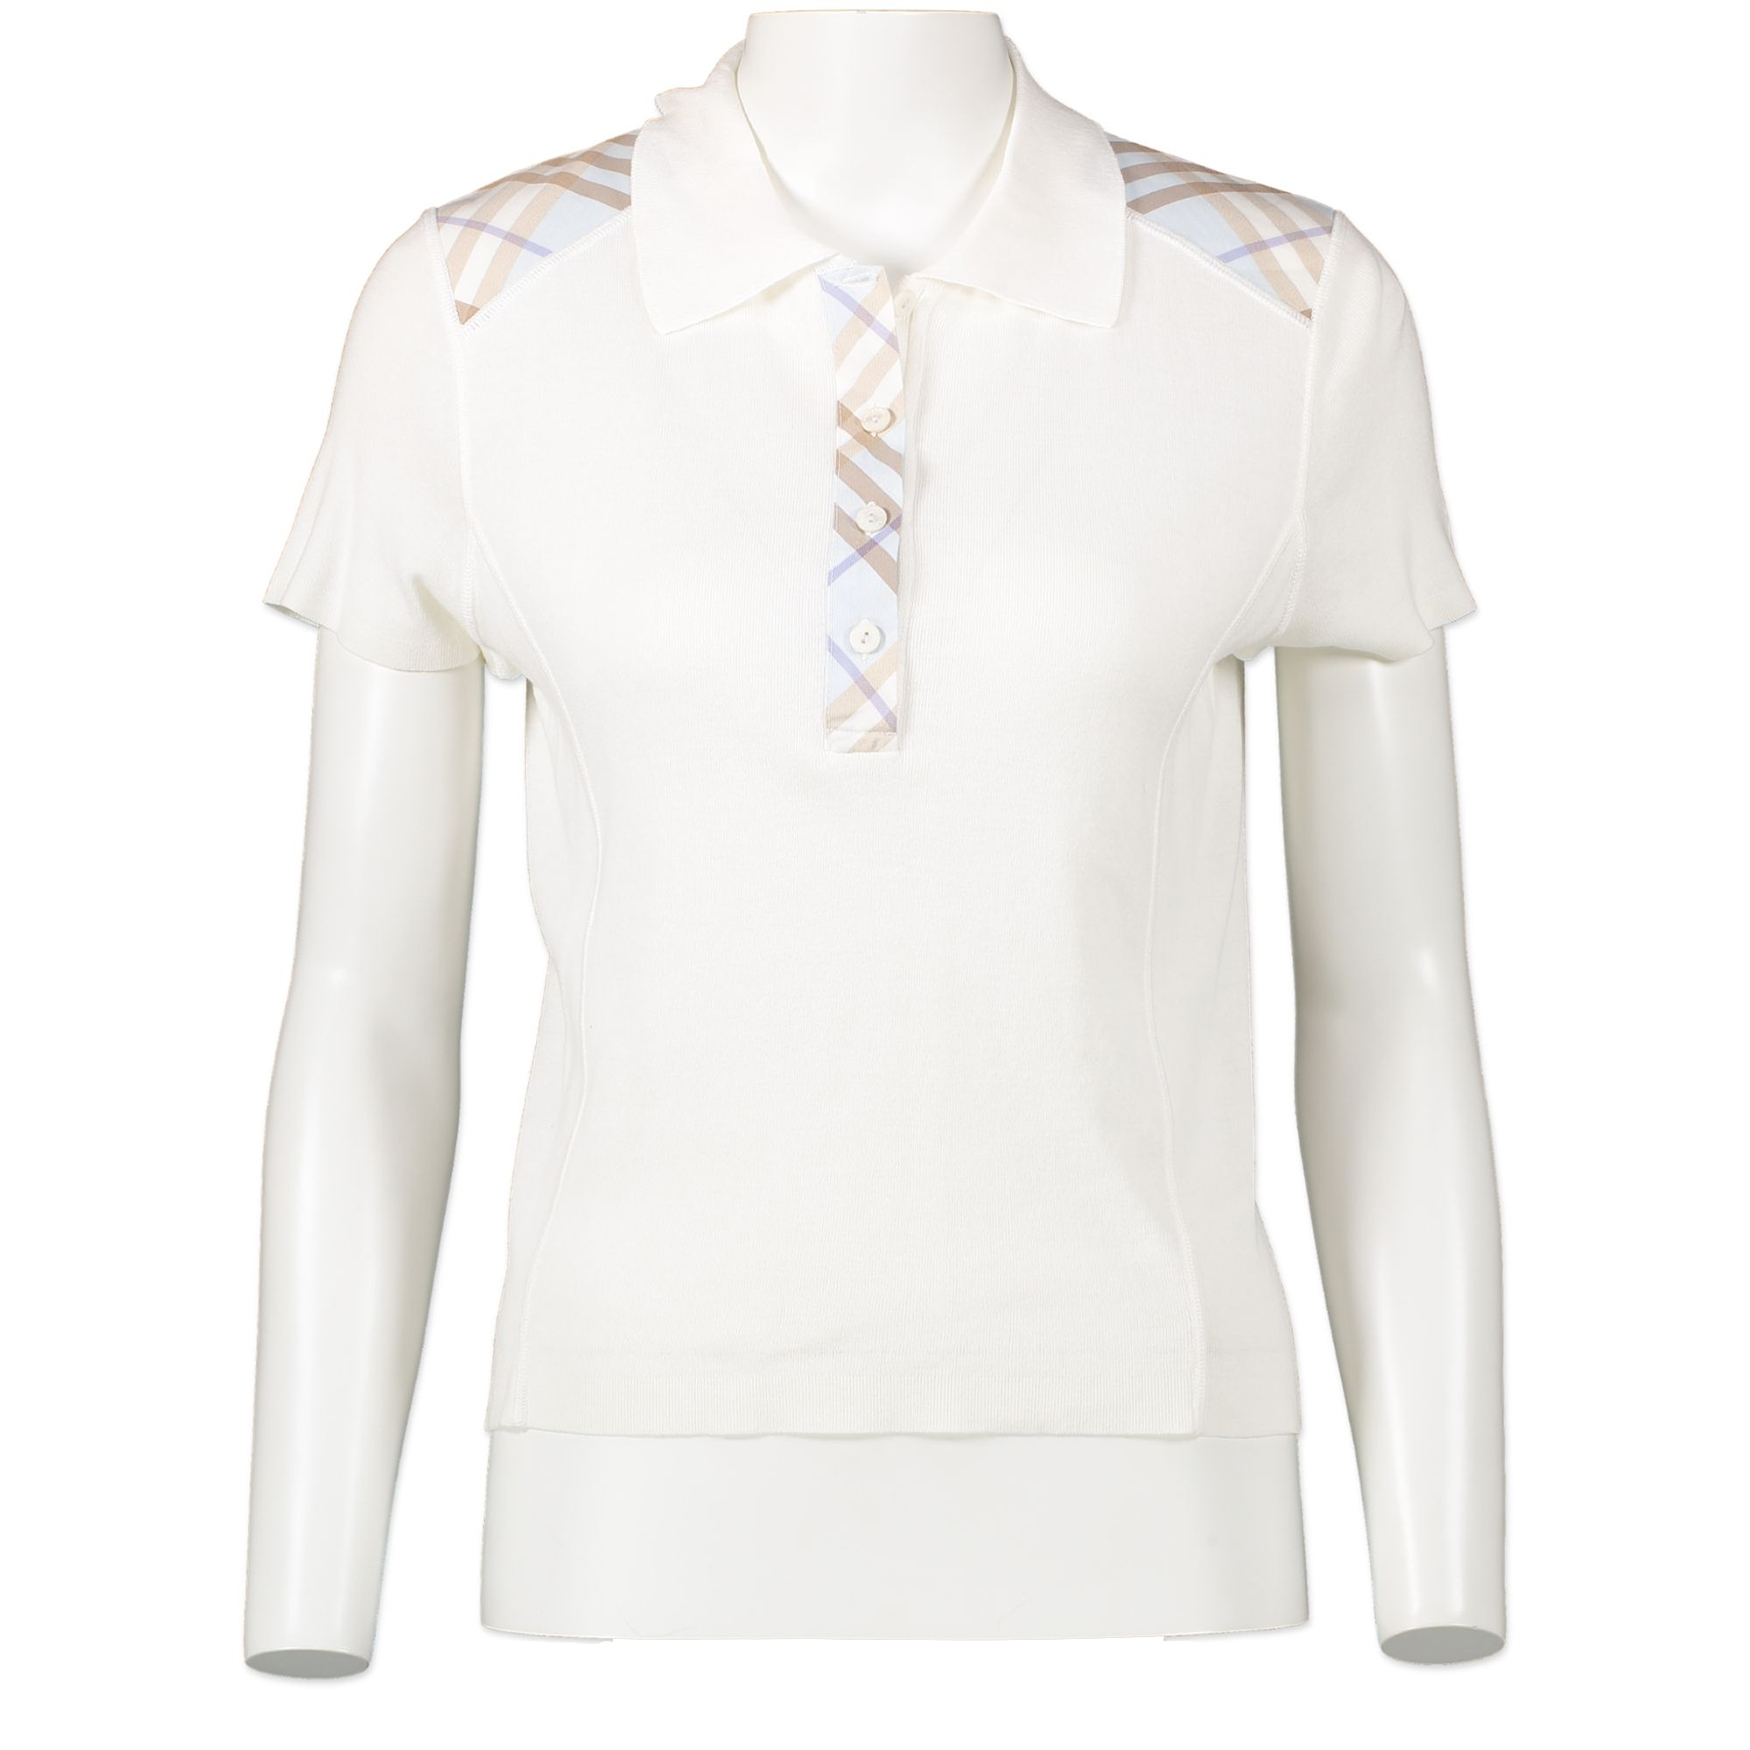 Burberry Polo + Sweater - Size M / L